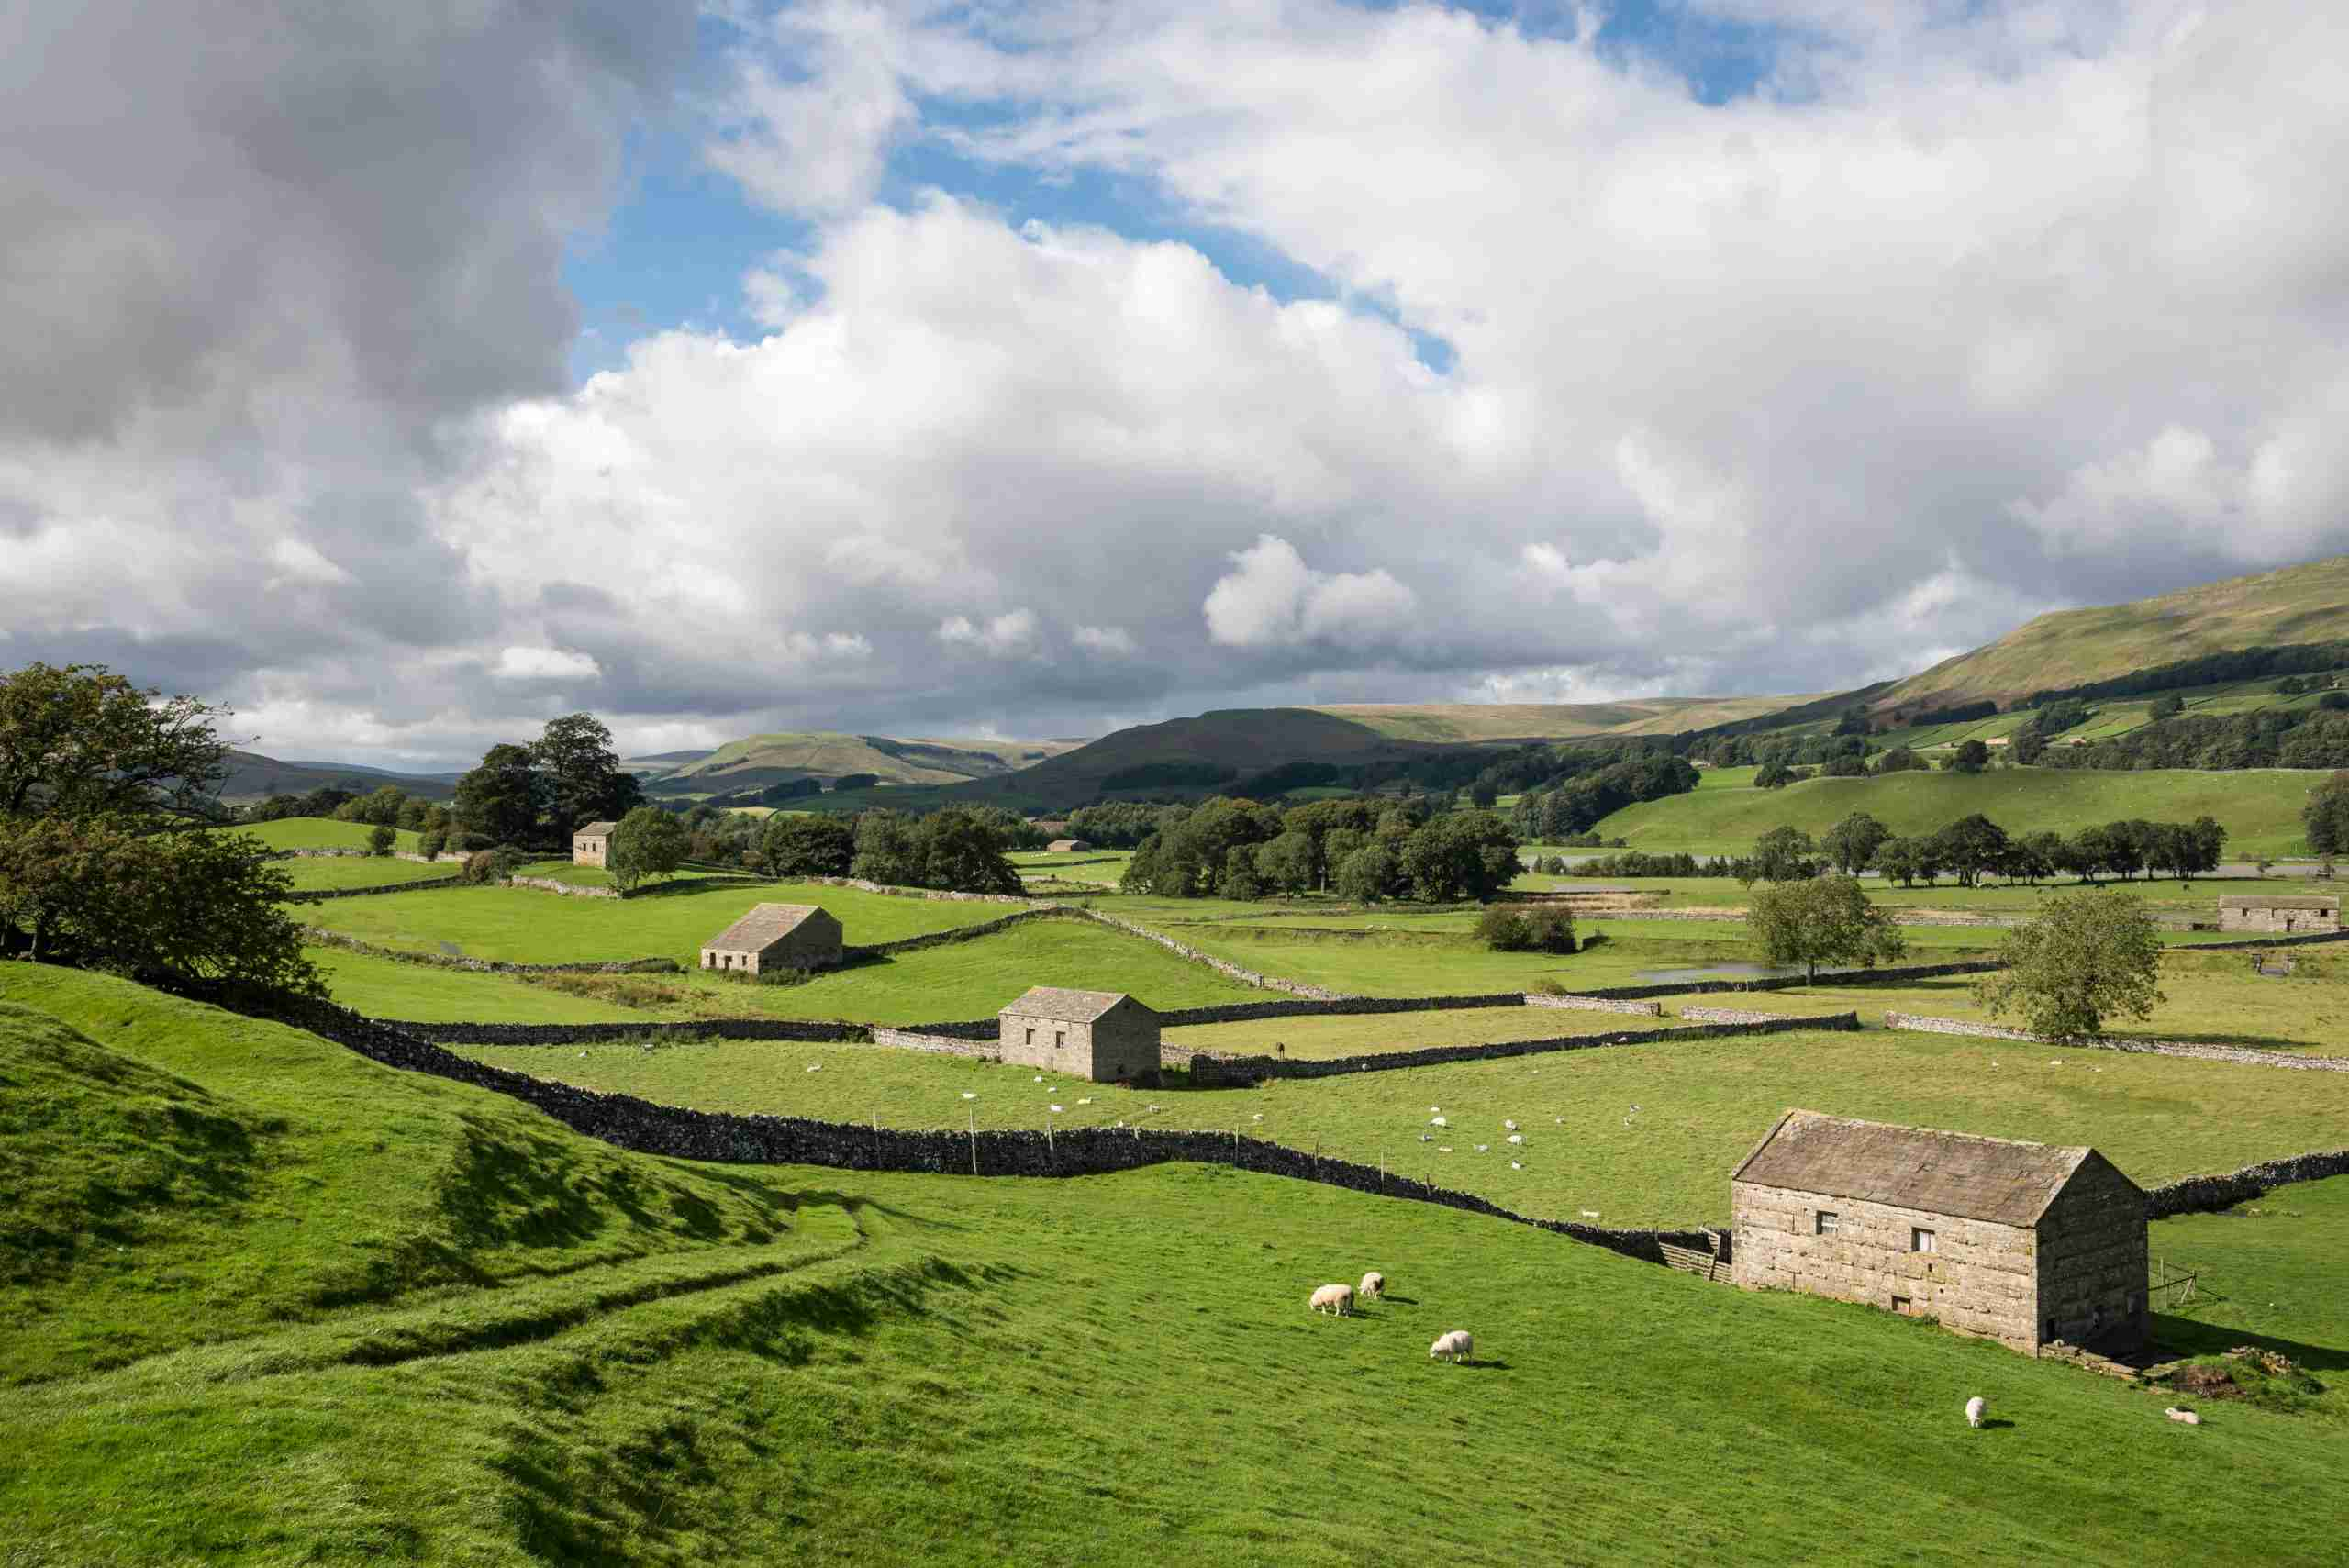 The lovely Yorkshire Dales. (Photo by Photos by R A Kearton/Getty Images)